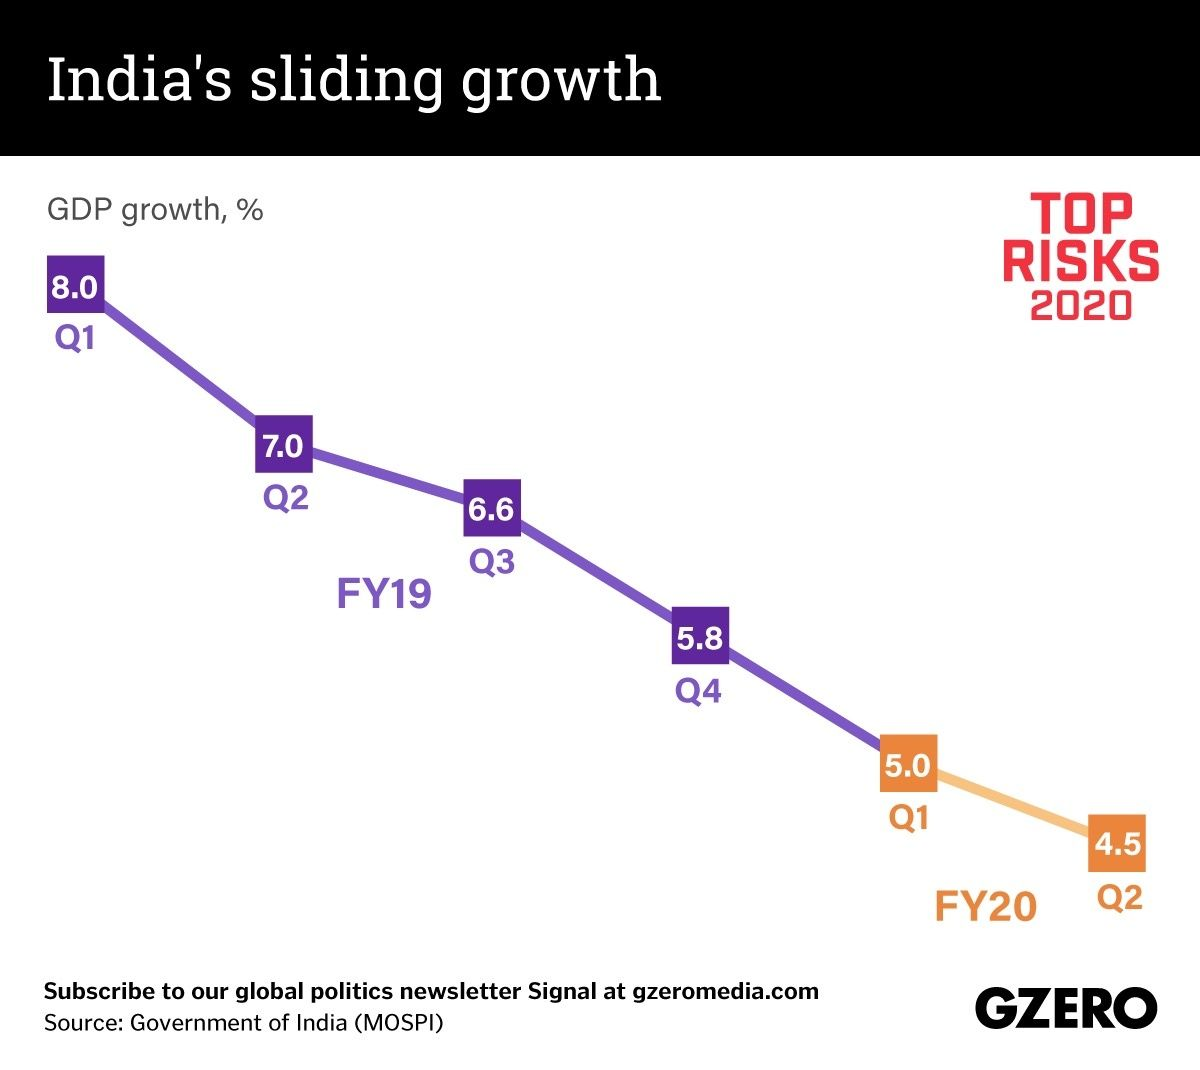 The Graphic Truth: India's sliding economic growth